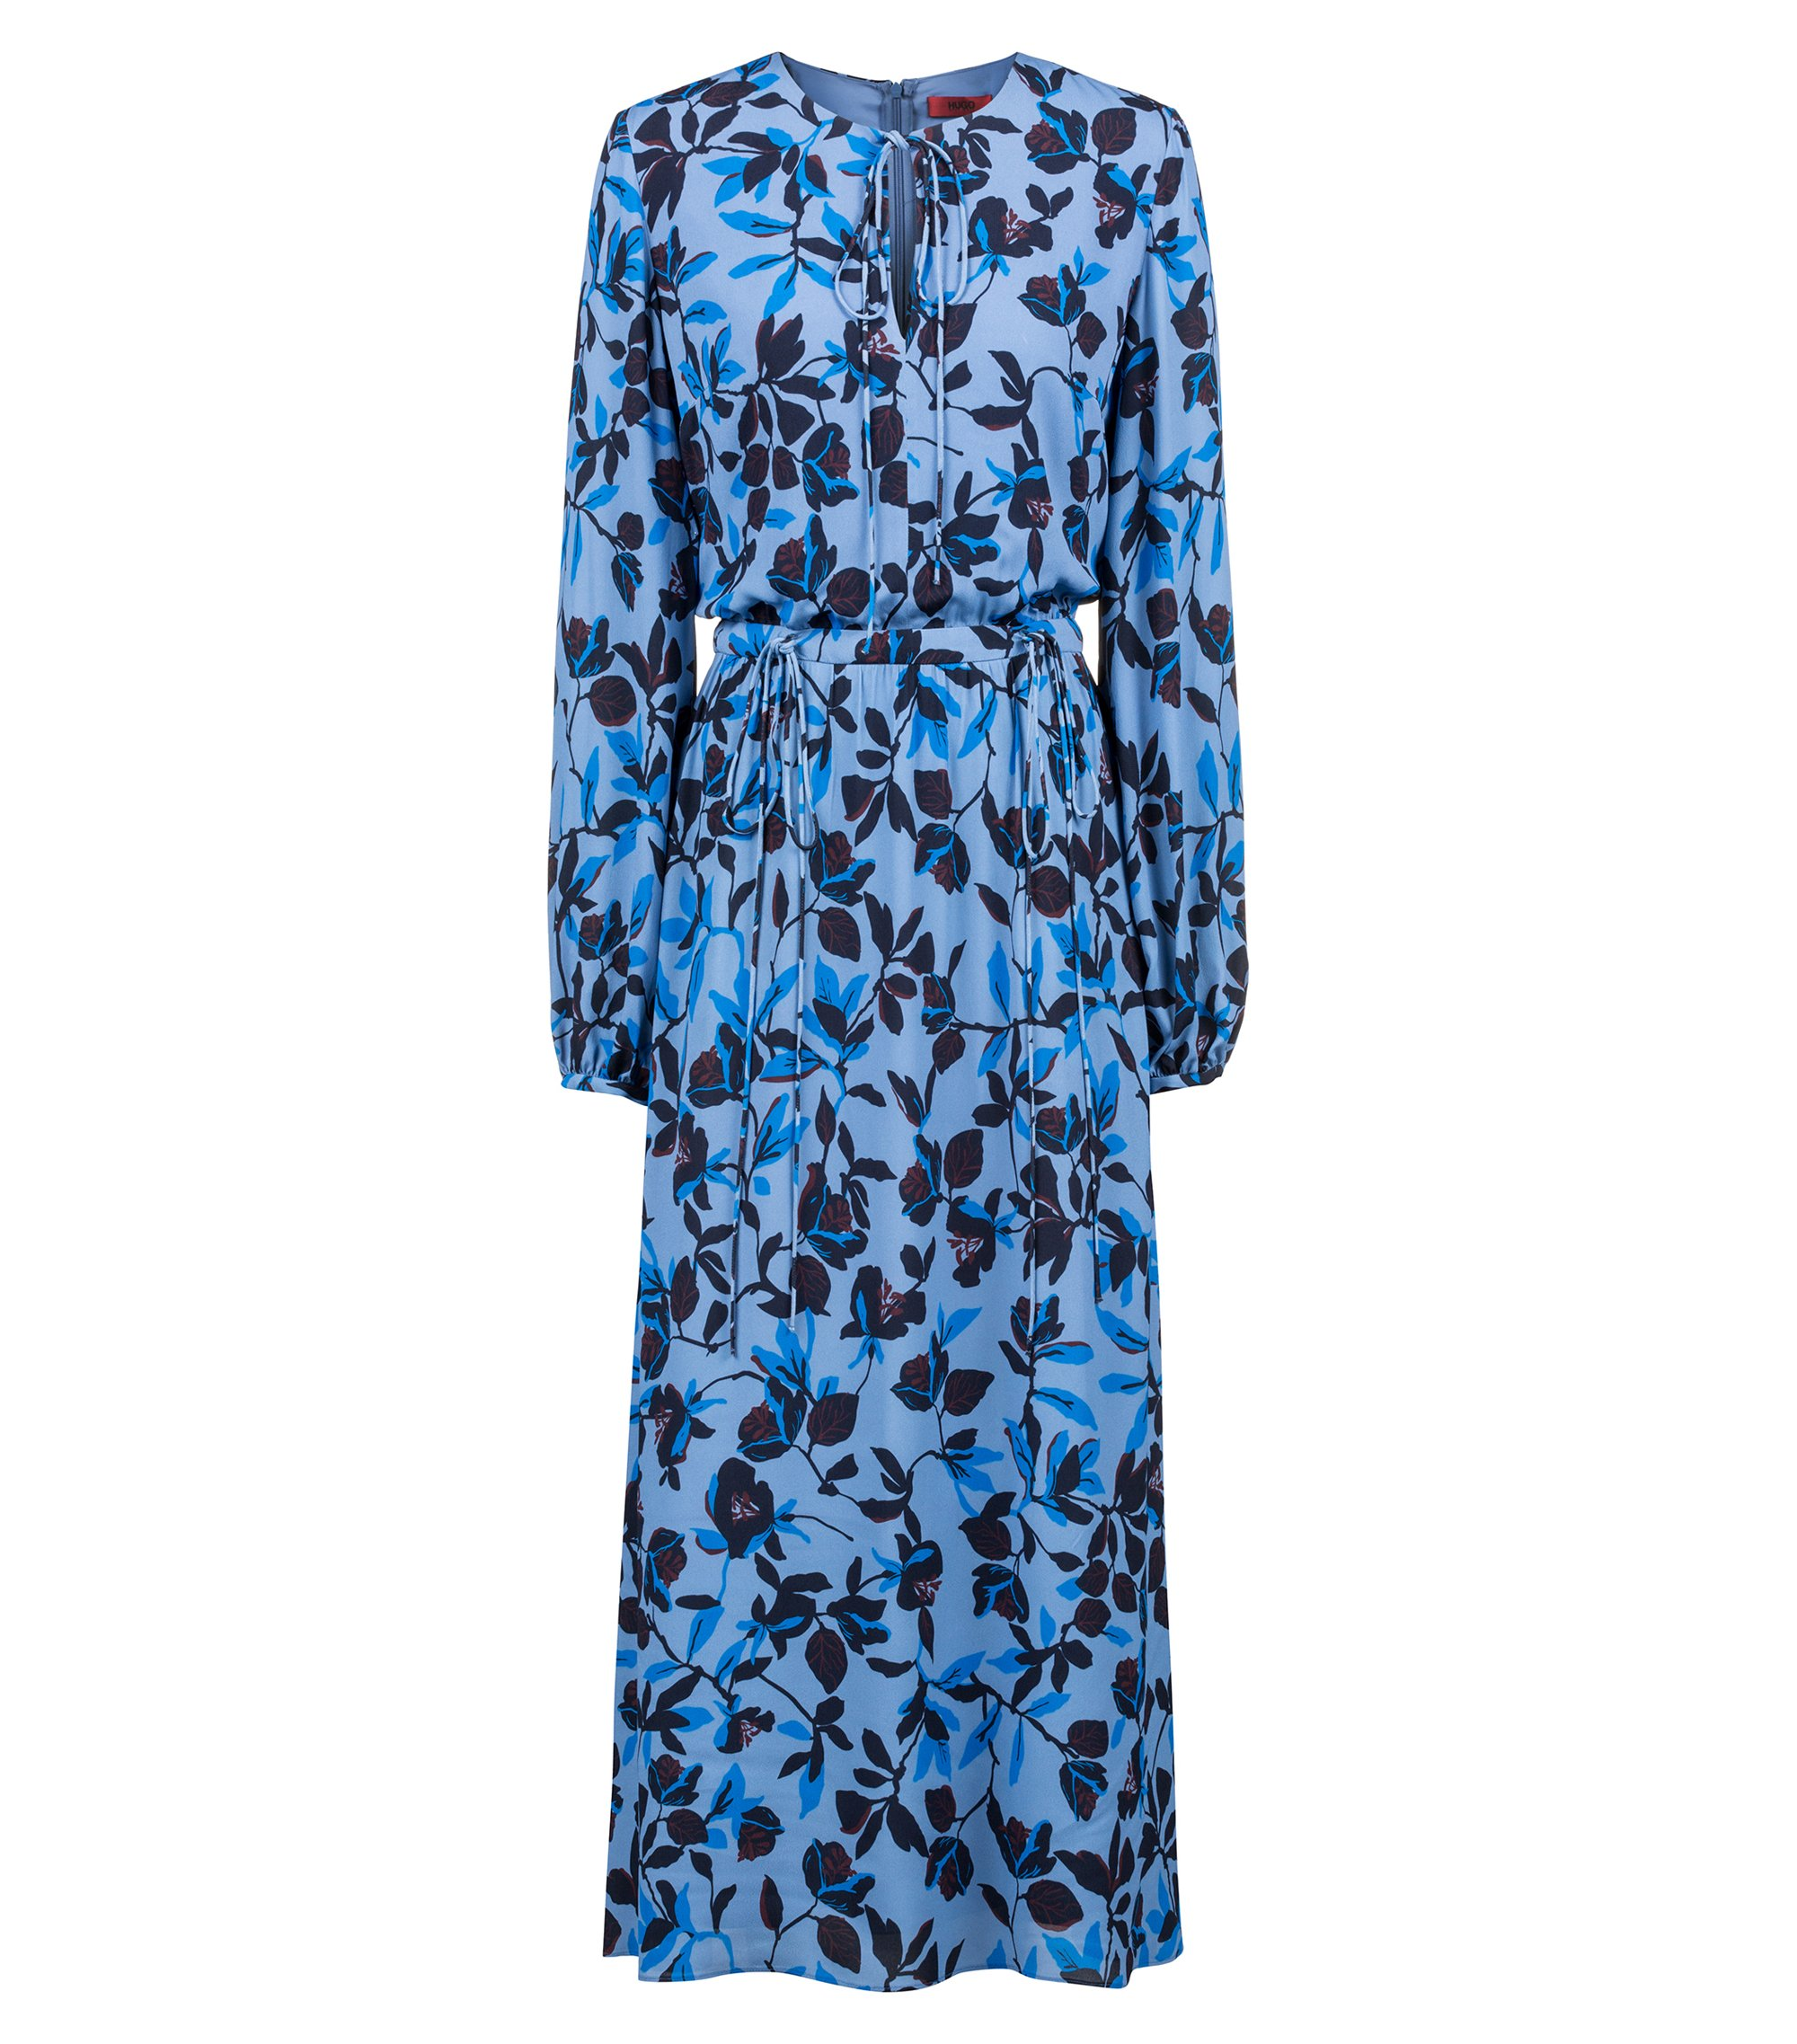 Lightweight midi dress with flower print and bow detailing, Patterned